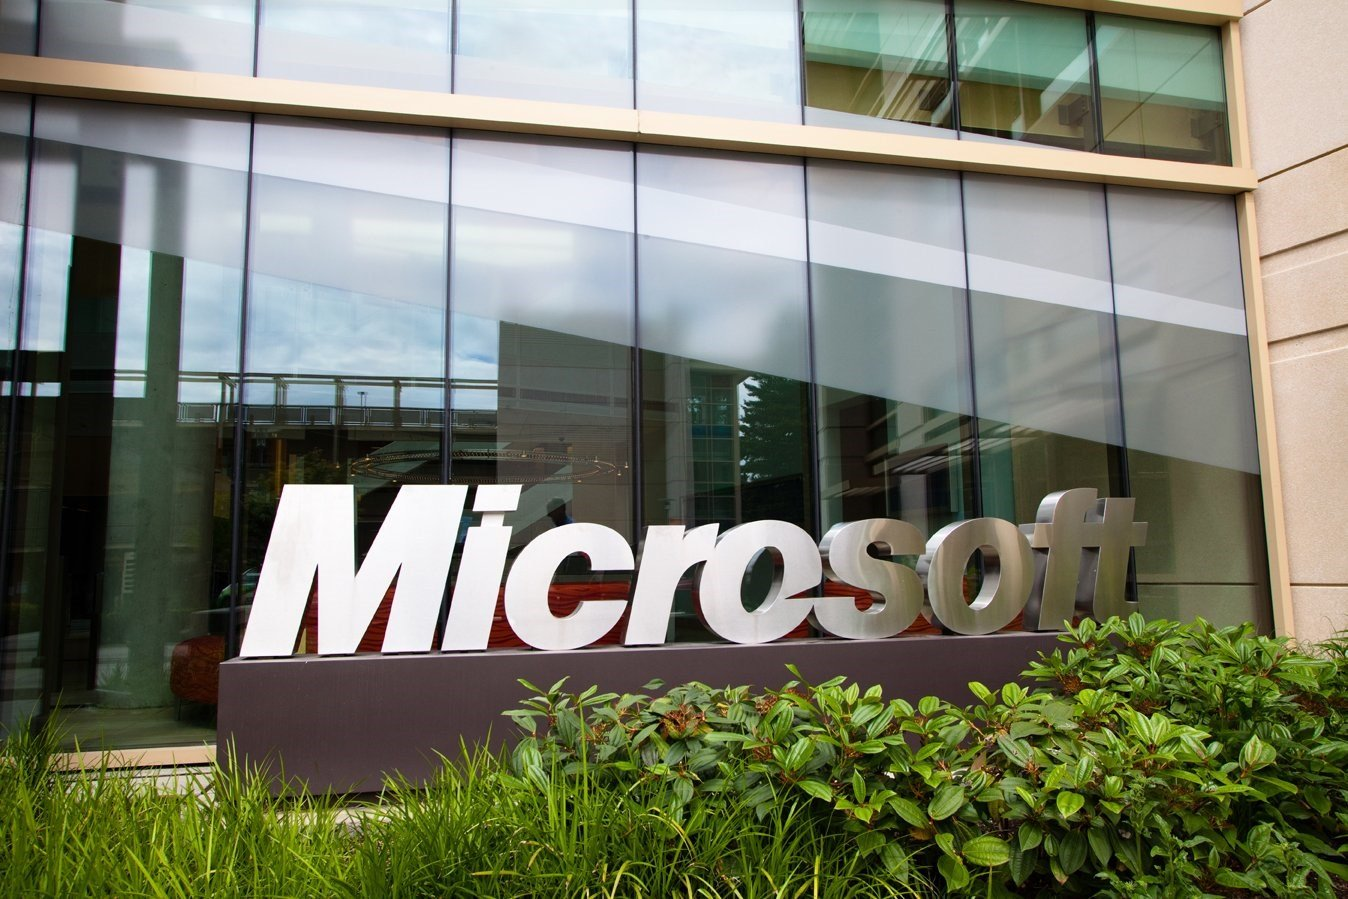 Microsoft buys former employee Charles Simonyi's Intentional Software